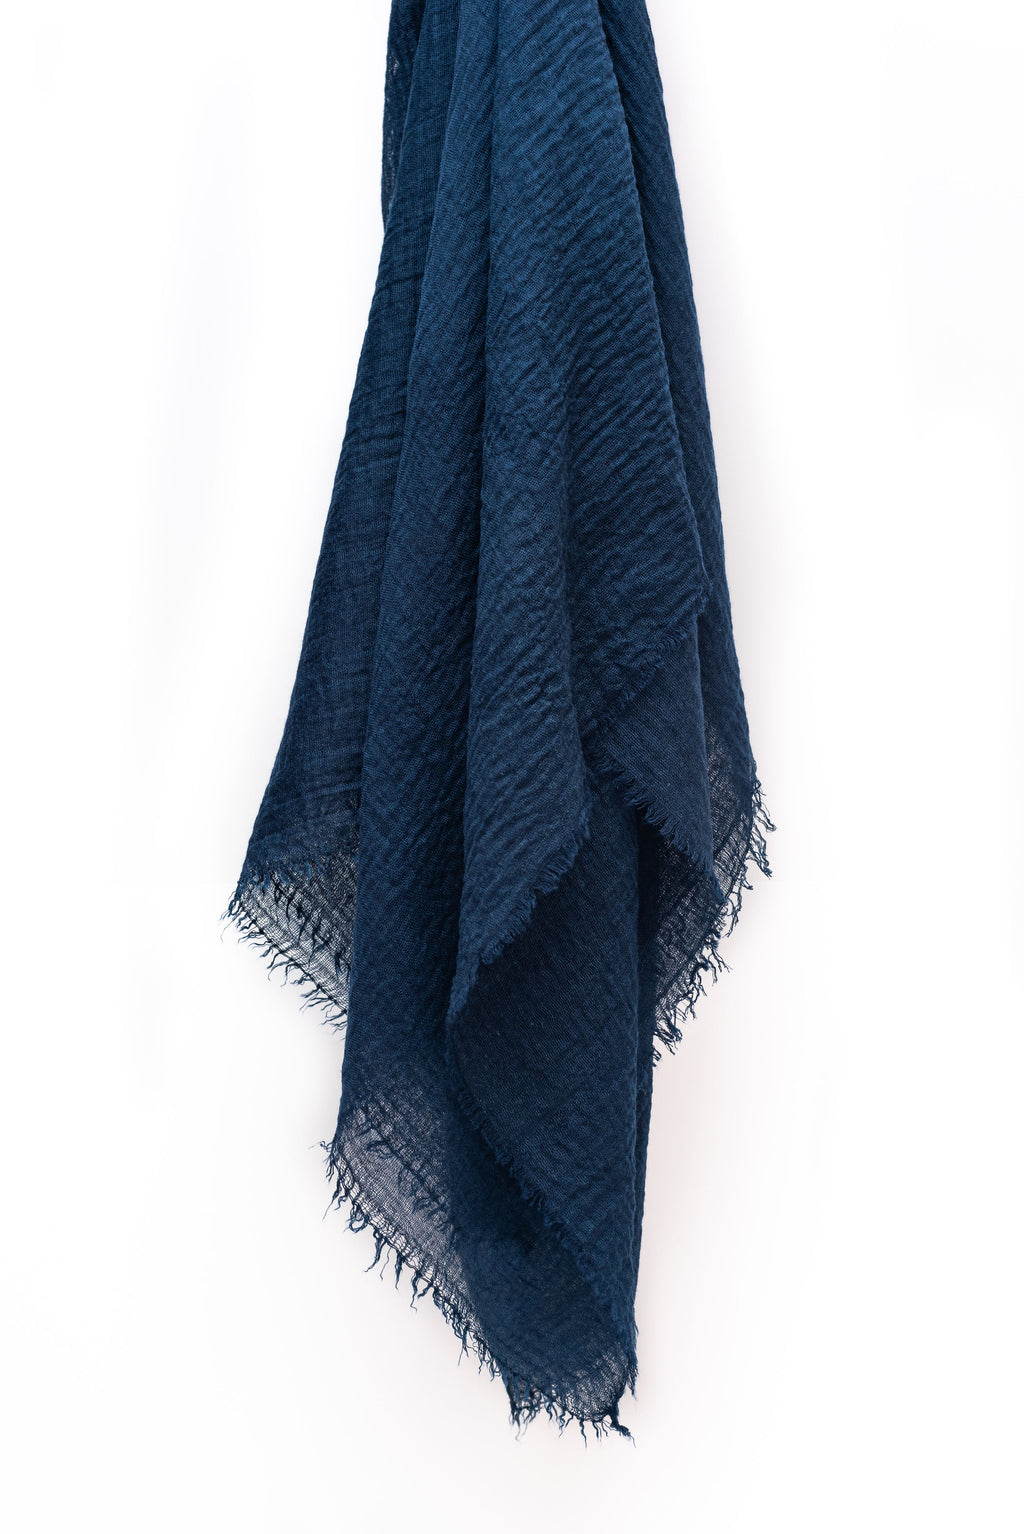 Navy Blue Cotton Crinkle